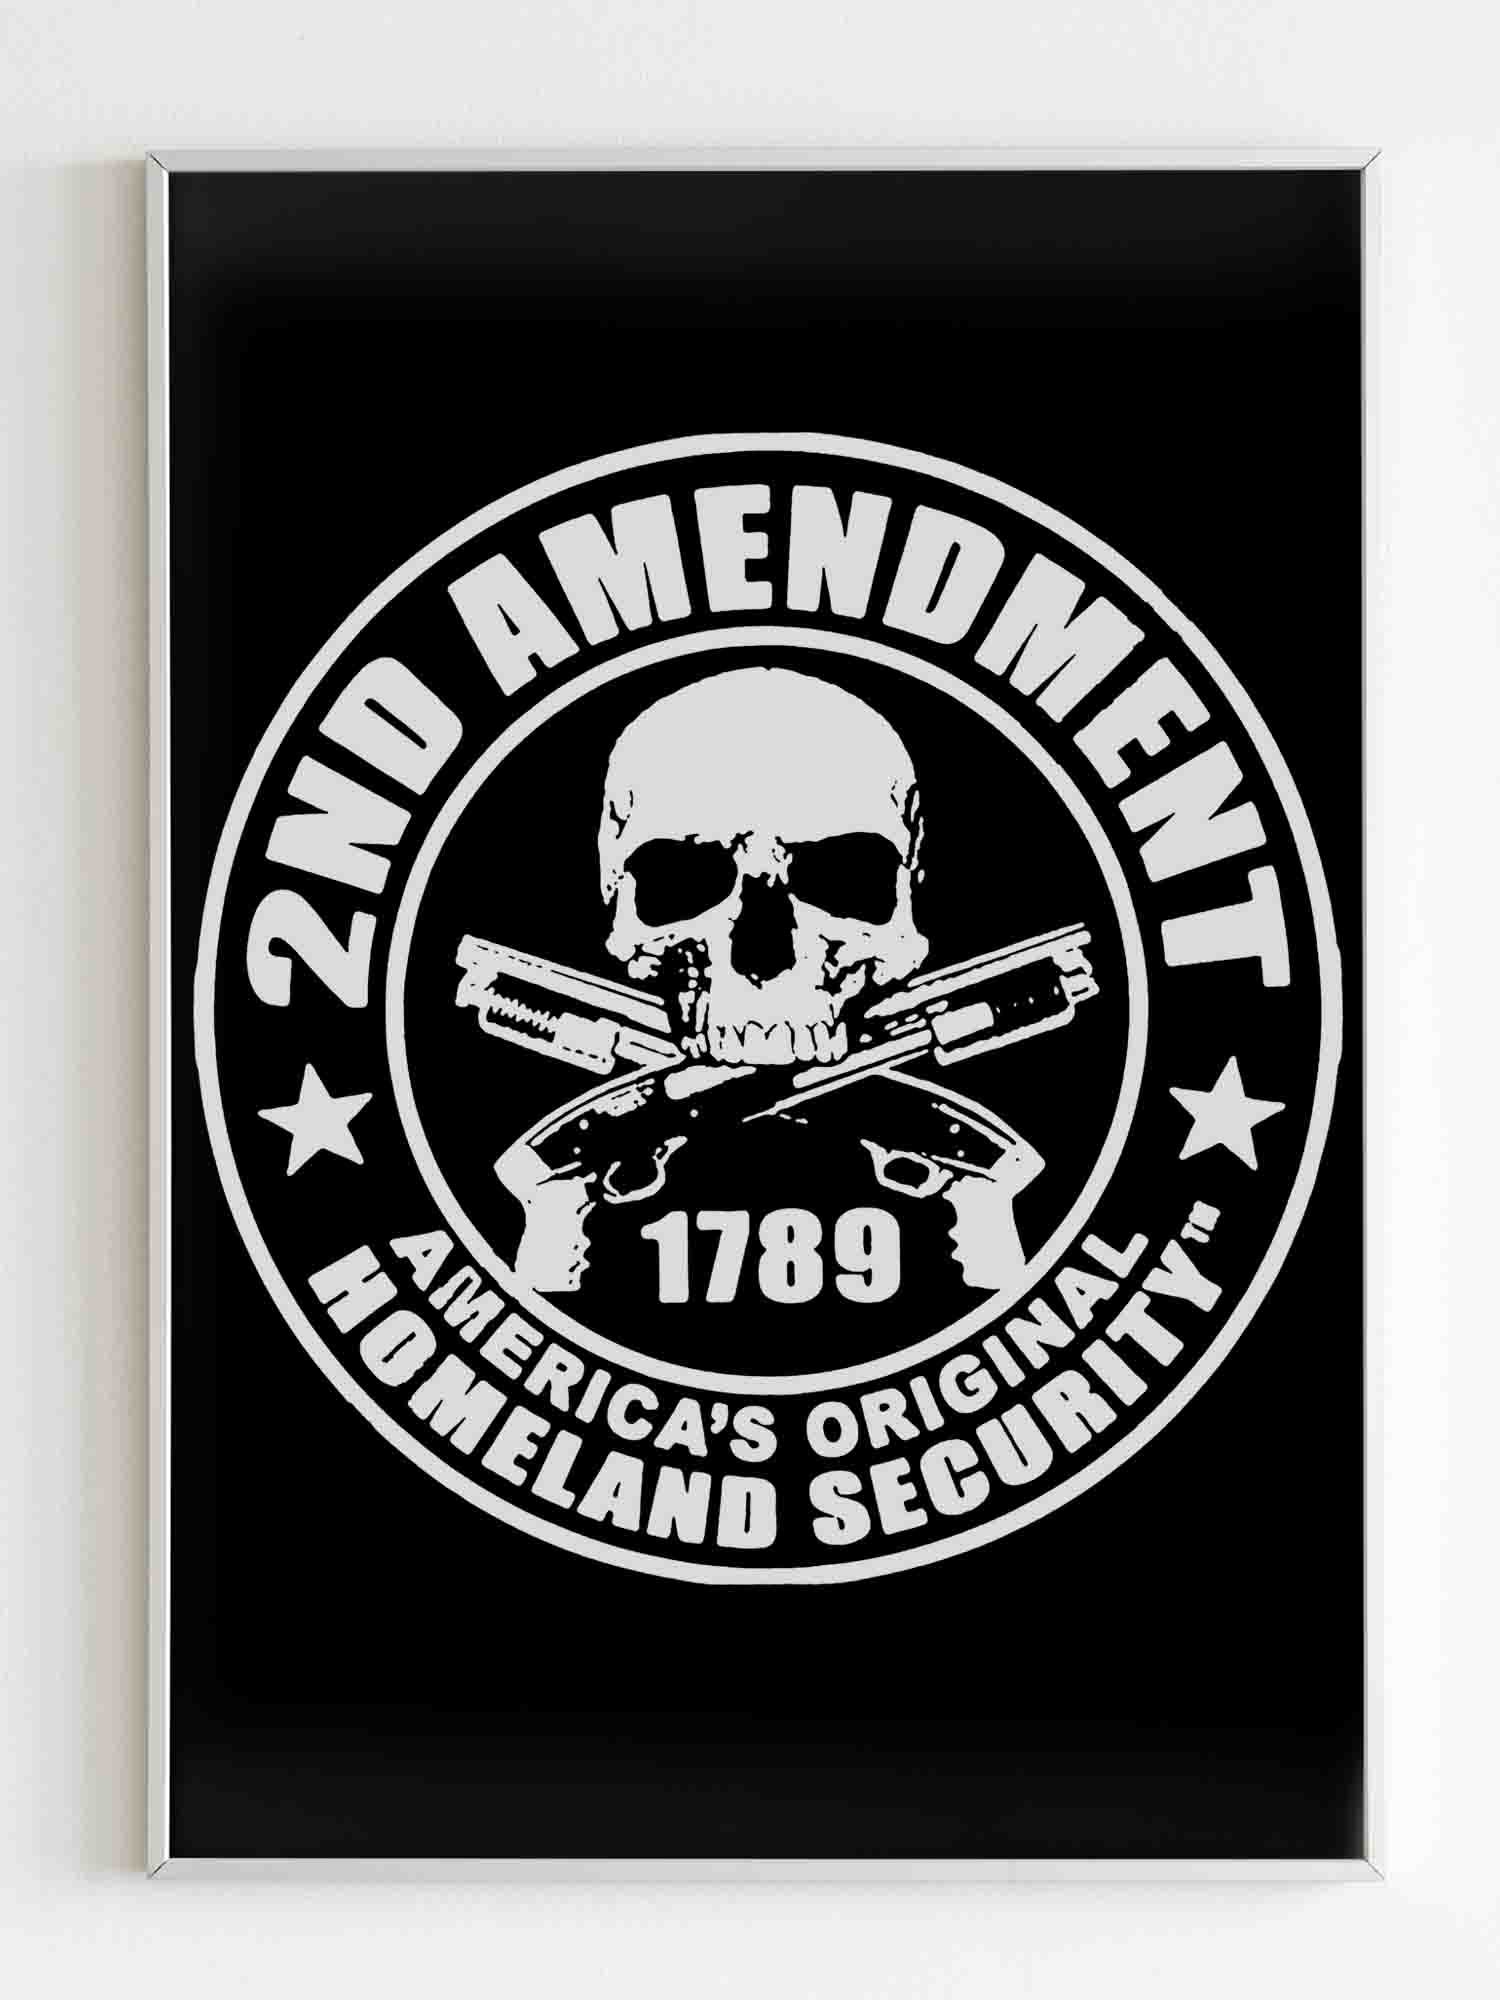 2nd Amendment America's Original Homeland Security Poster